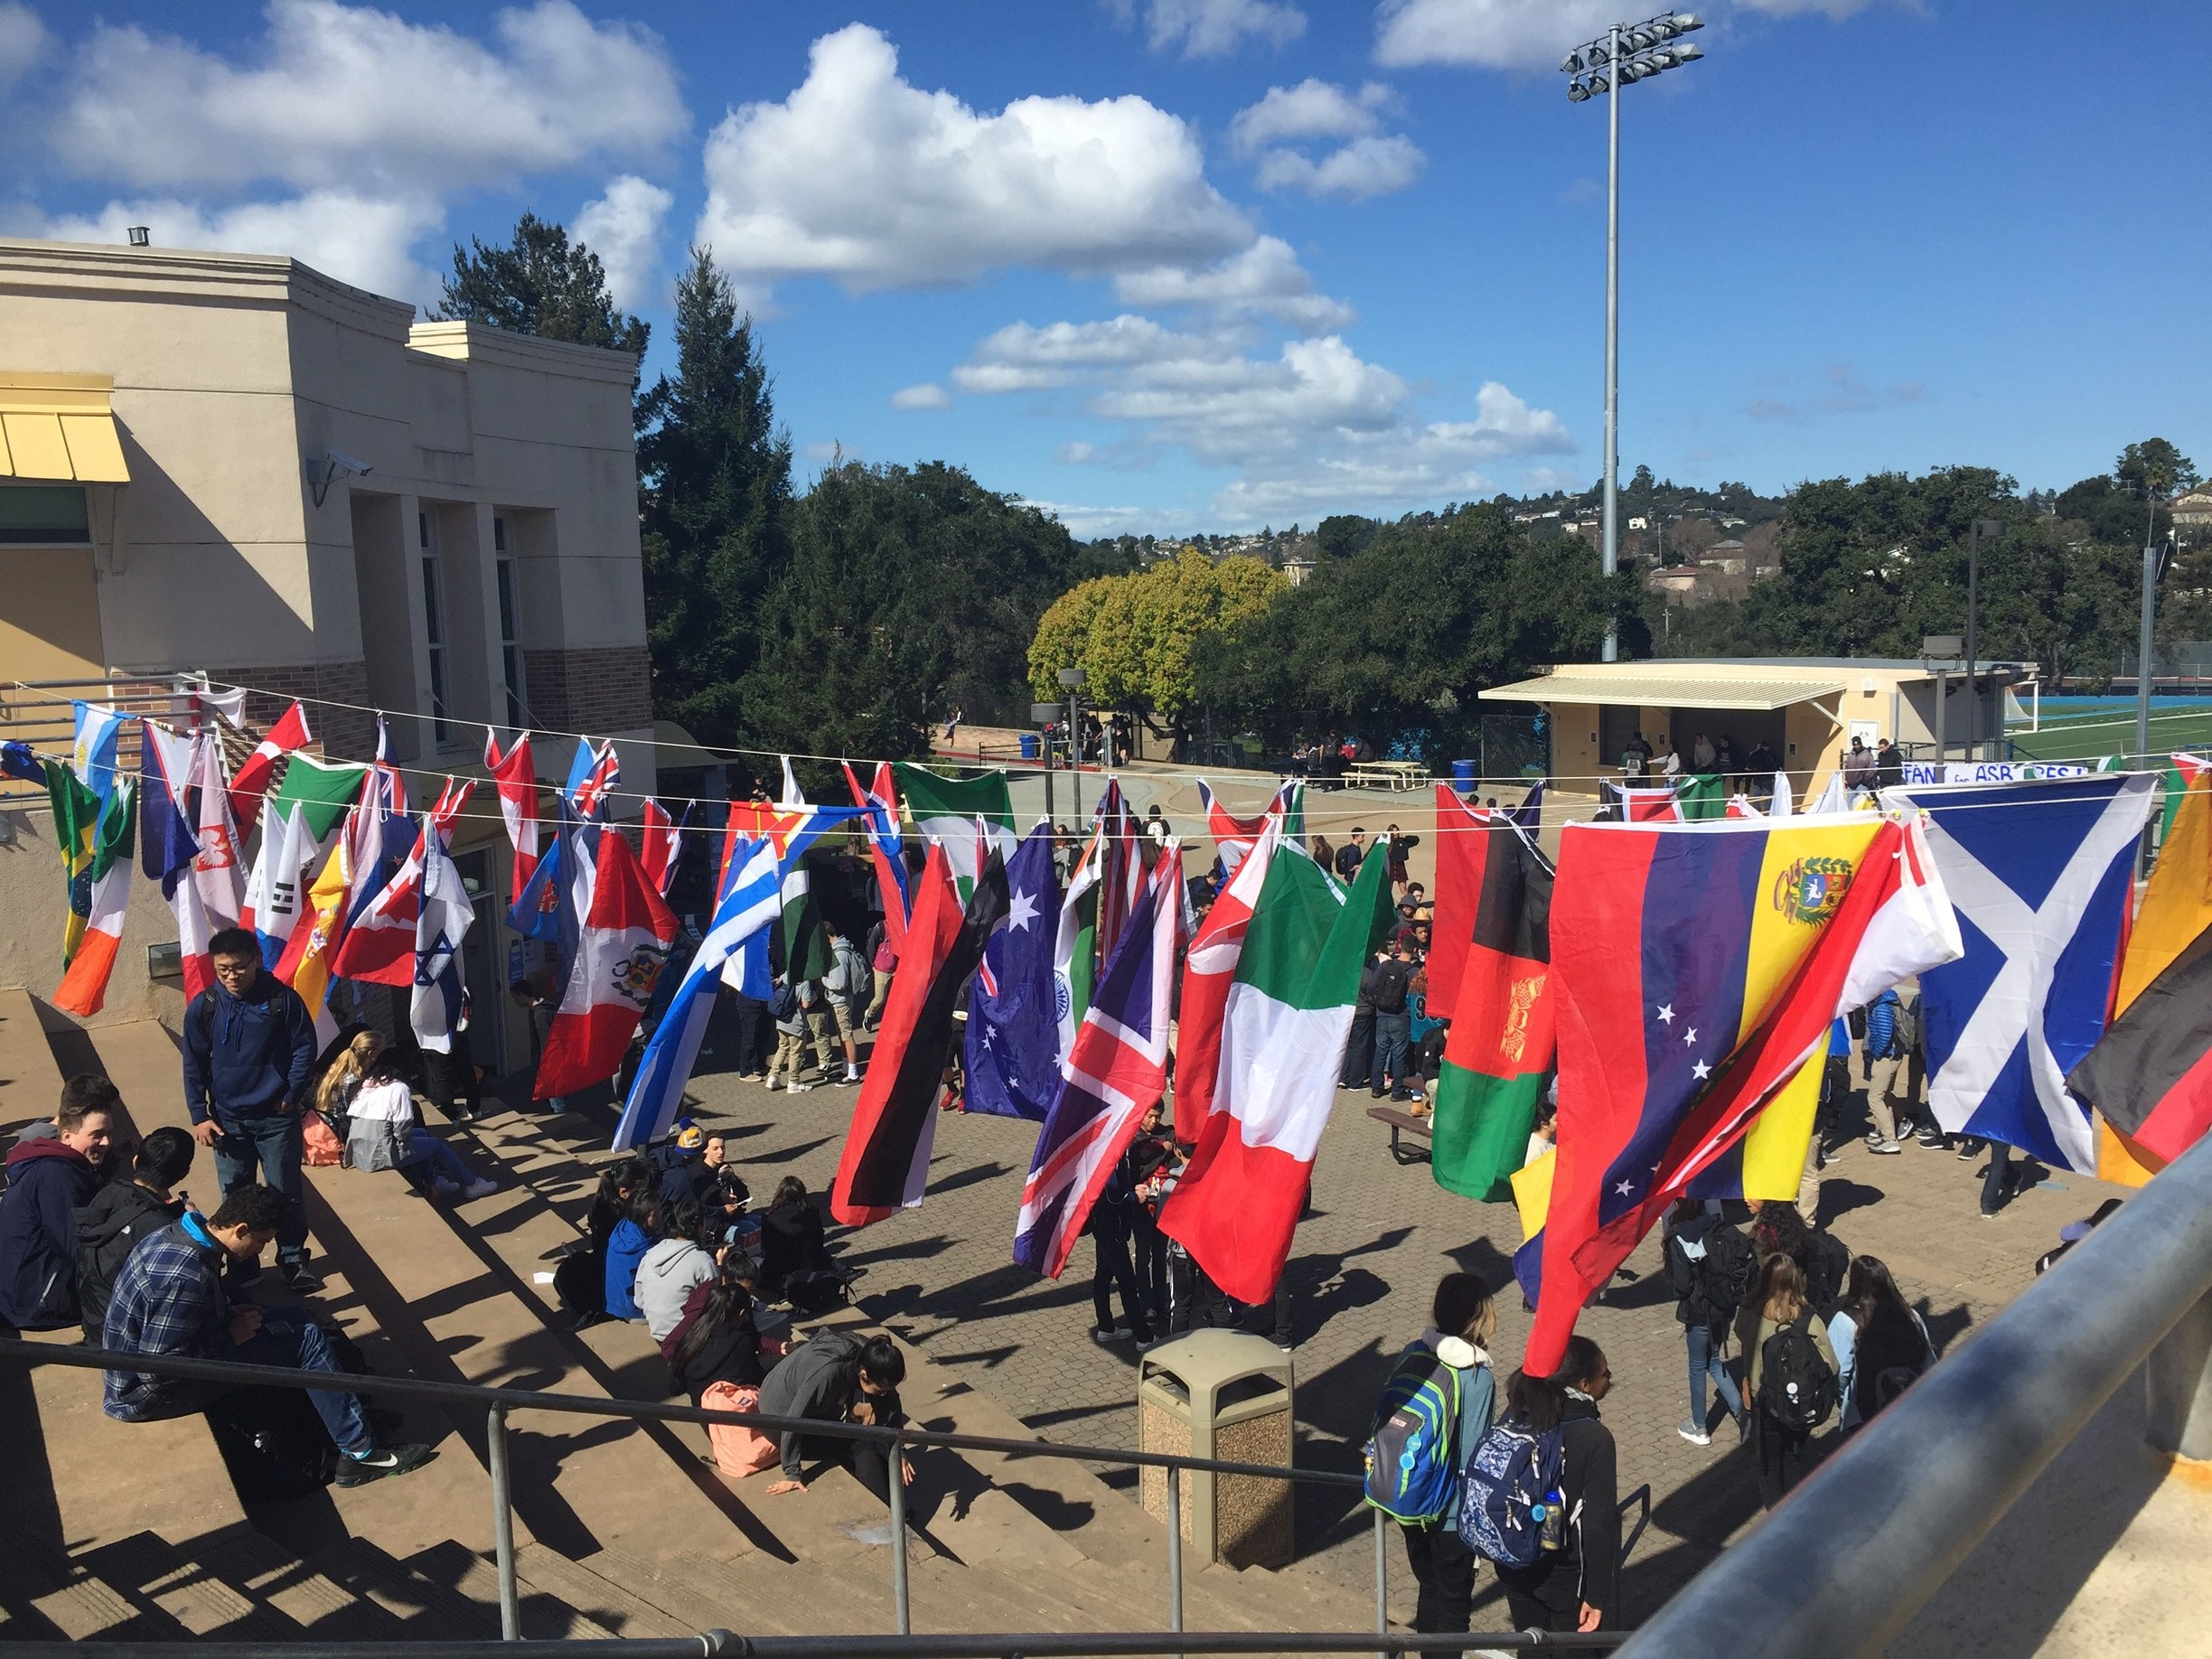 Flags are hung above the quad to celebrate the diversity of all students.